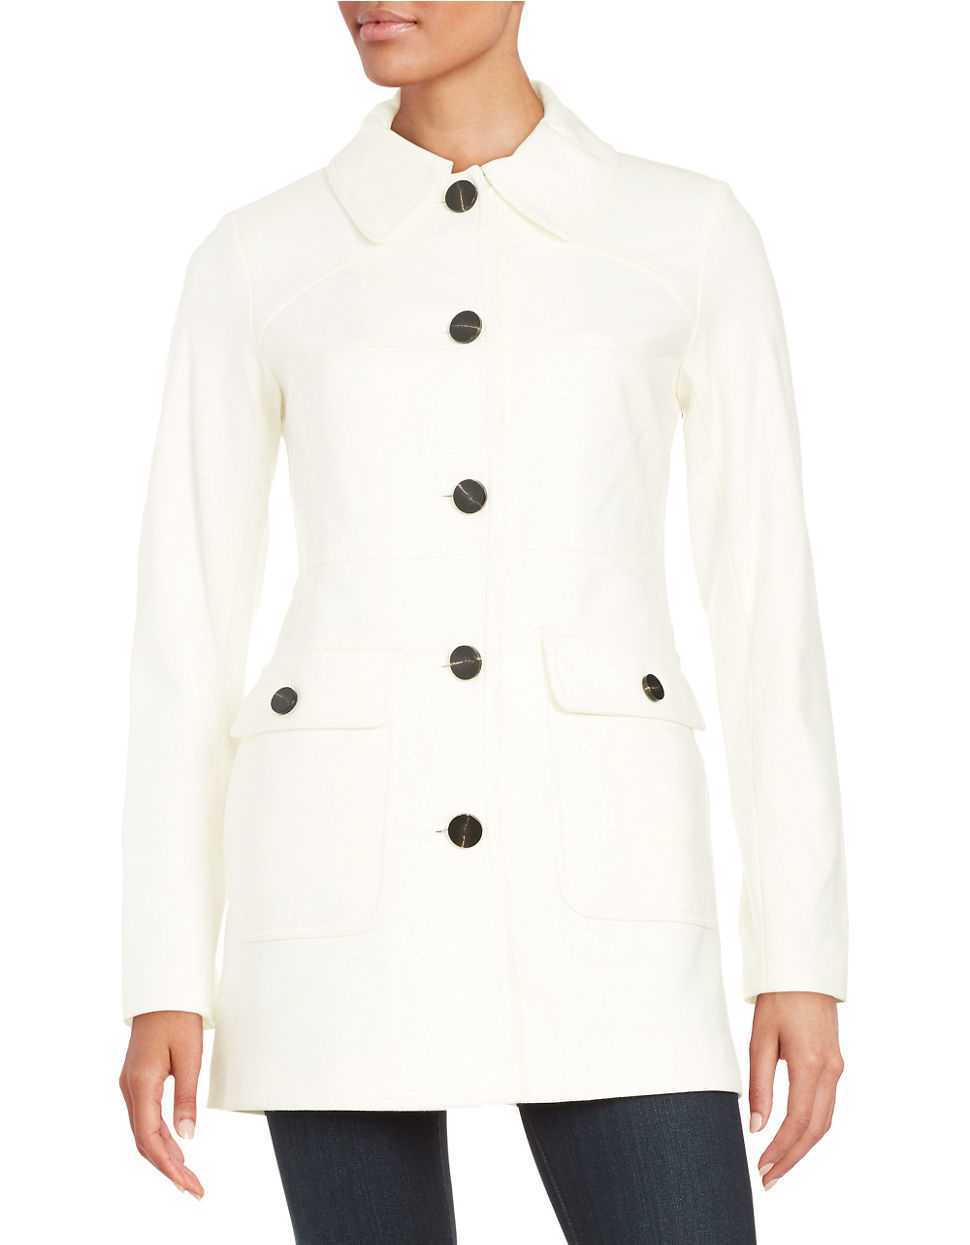 Vince camuto Button-down Car Coat in White | Lyst